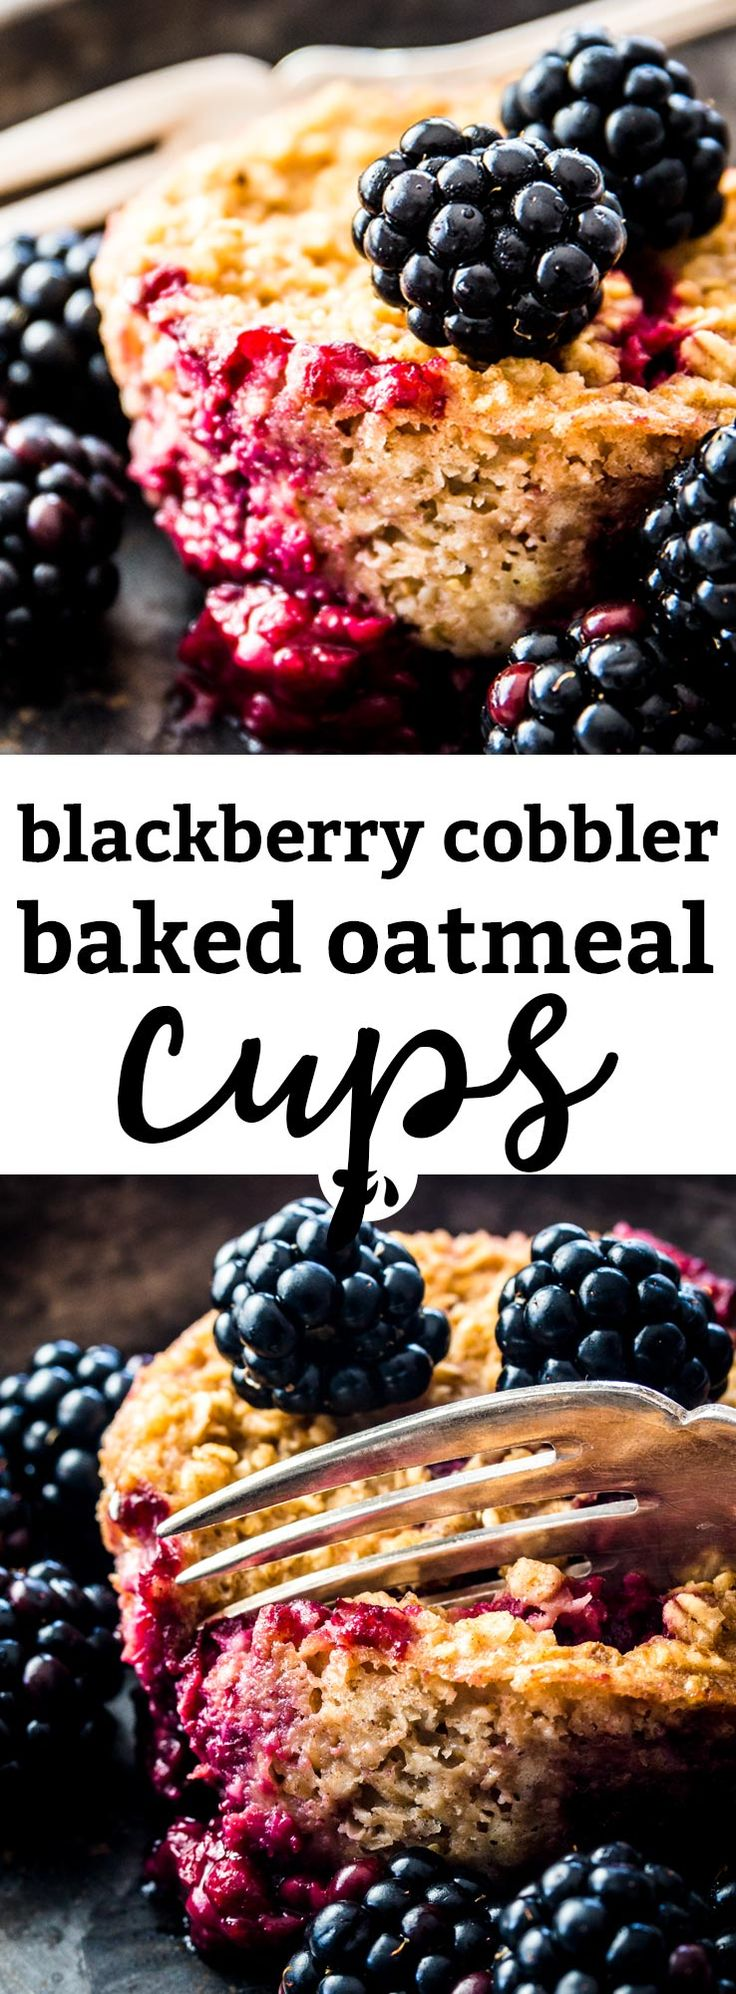 Are you looking for a healthy meal prep breakfast to make ahead for busy school mornings? Try these easy make ahead blackberry cobbler baked oatmeal cups! They are easy to whip up with oats, applesauce, blackberries and cinnamon. The perfect gluten free, dairy free, egg free, vegan recipe made with simple ingredients for a fuss free clean eating boost. Stock your freezer with them today and be ready for the back to school craze! | #vegan #backtoschool #glutenfree #mealprep #breakfast #recipe